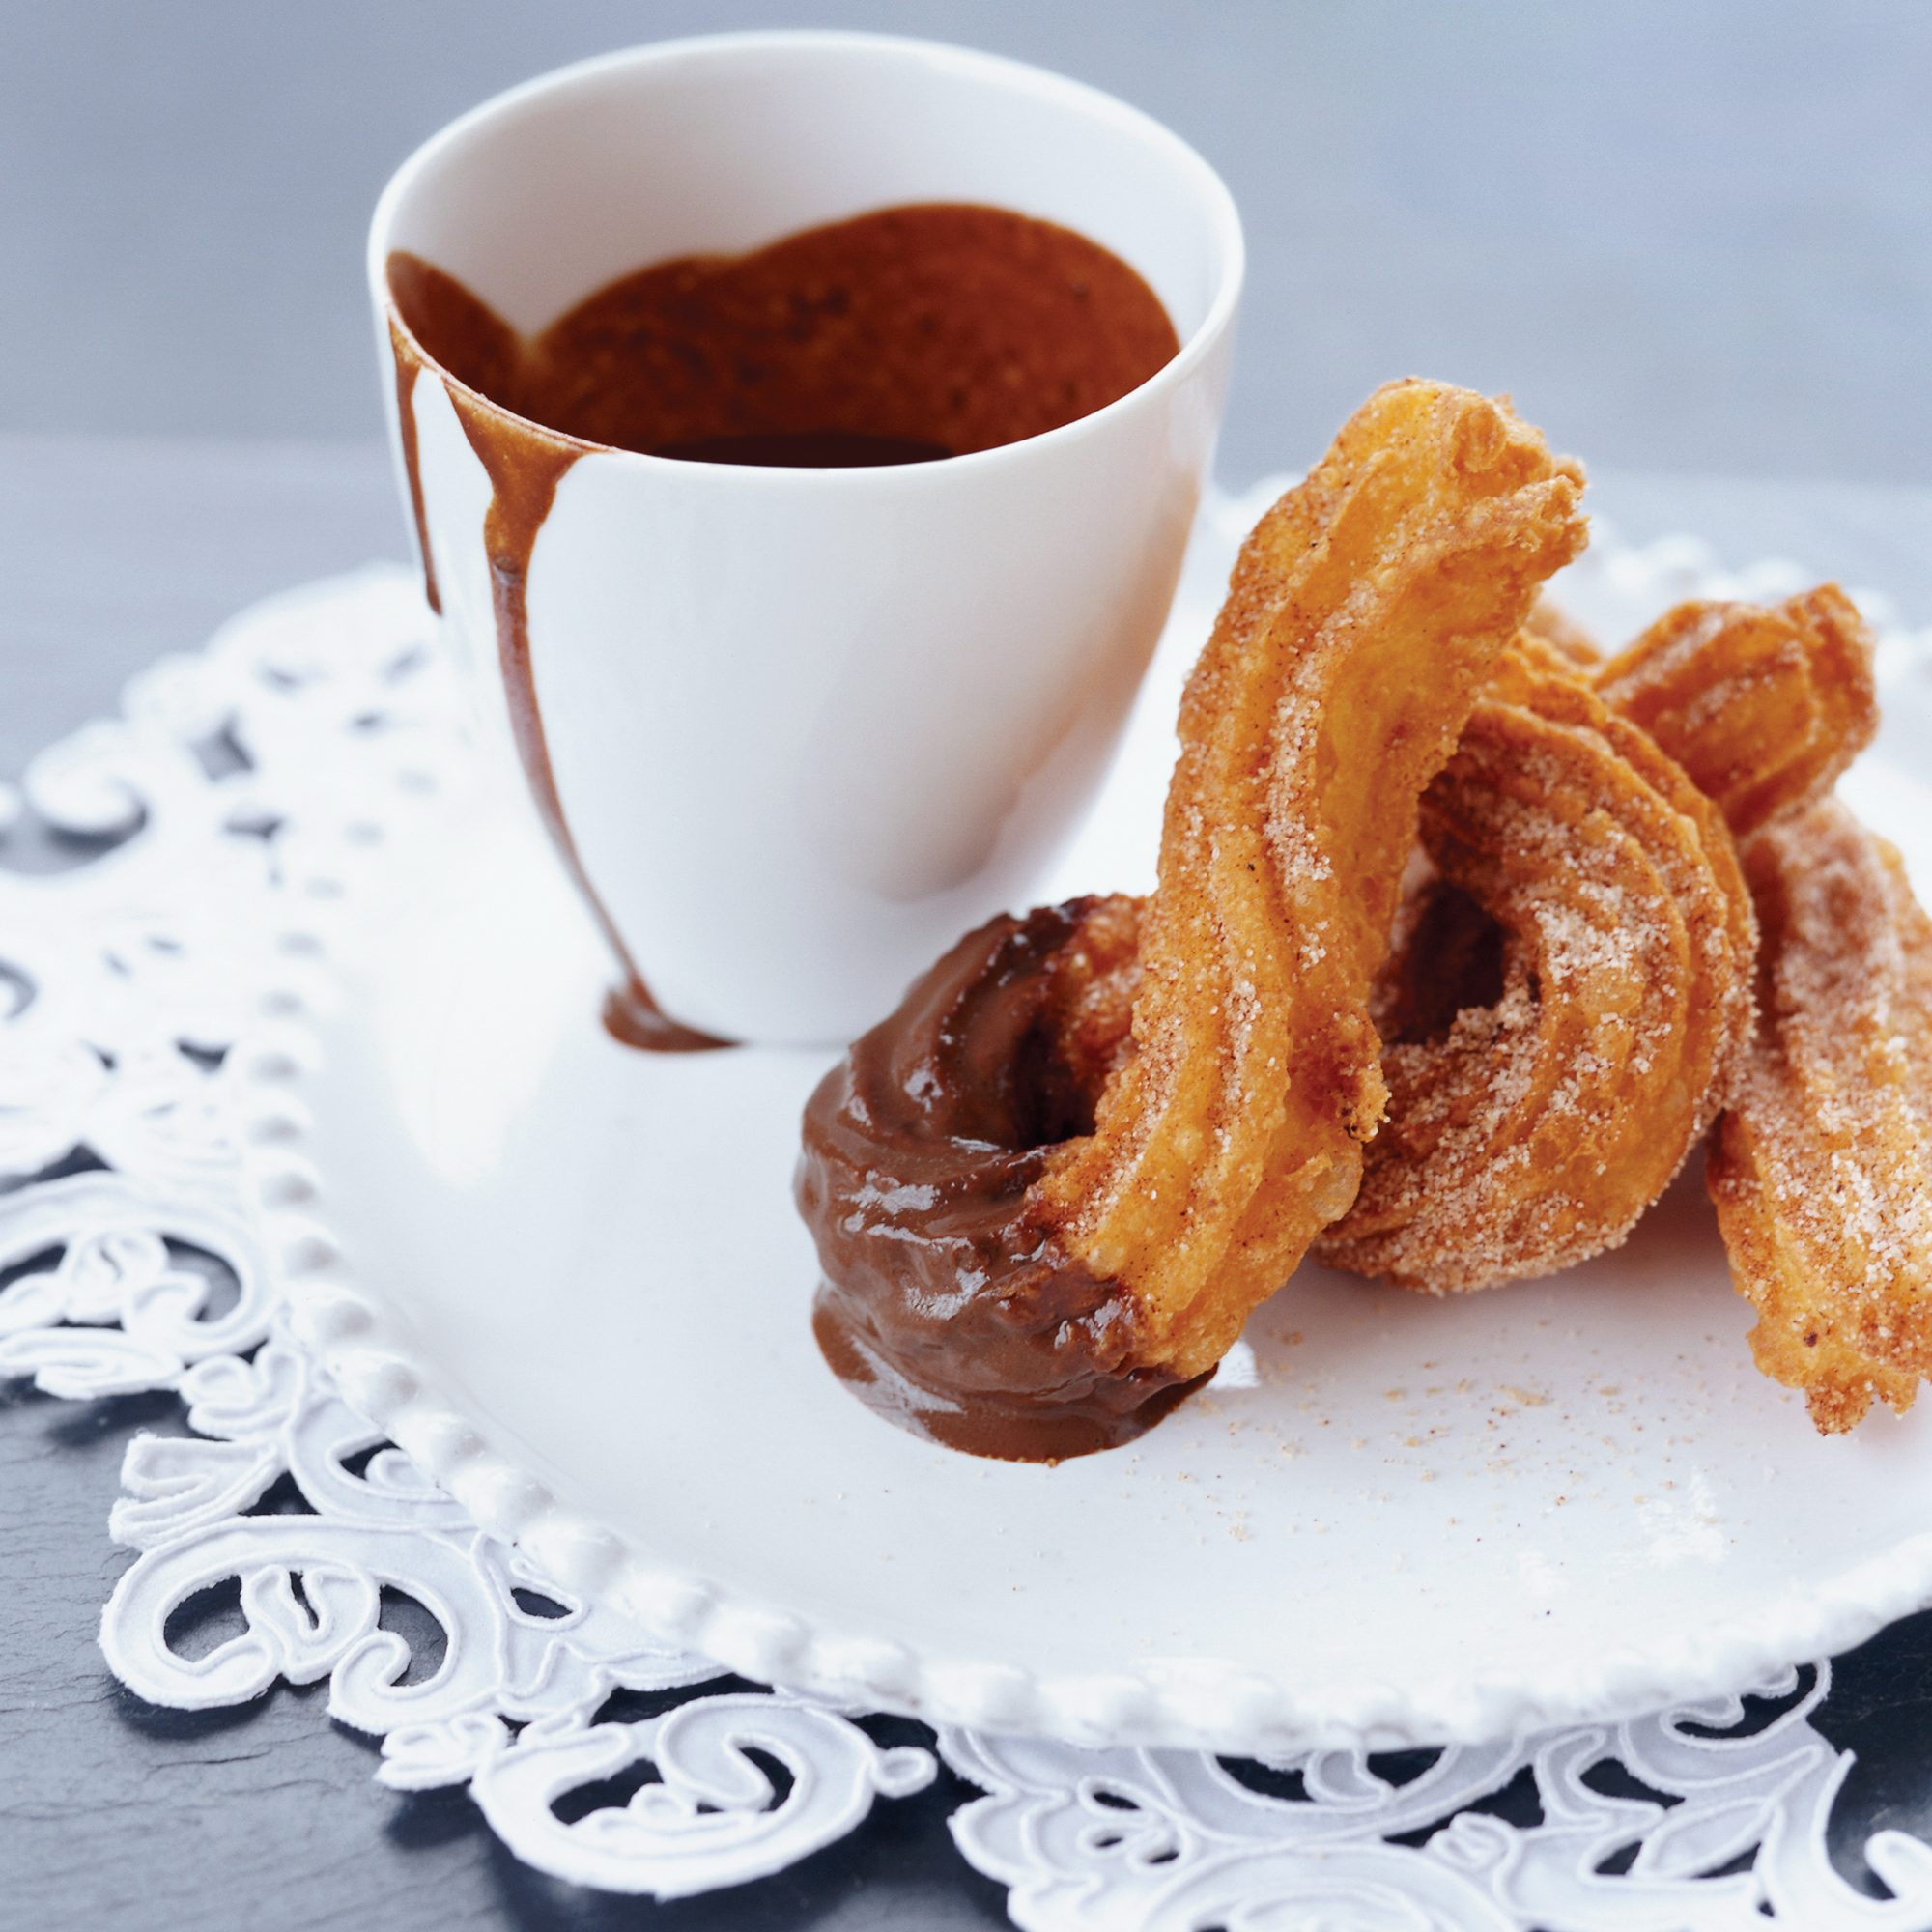 Warm Churros and Hot Chocolate